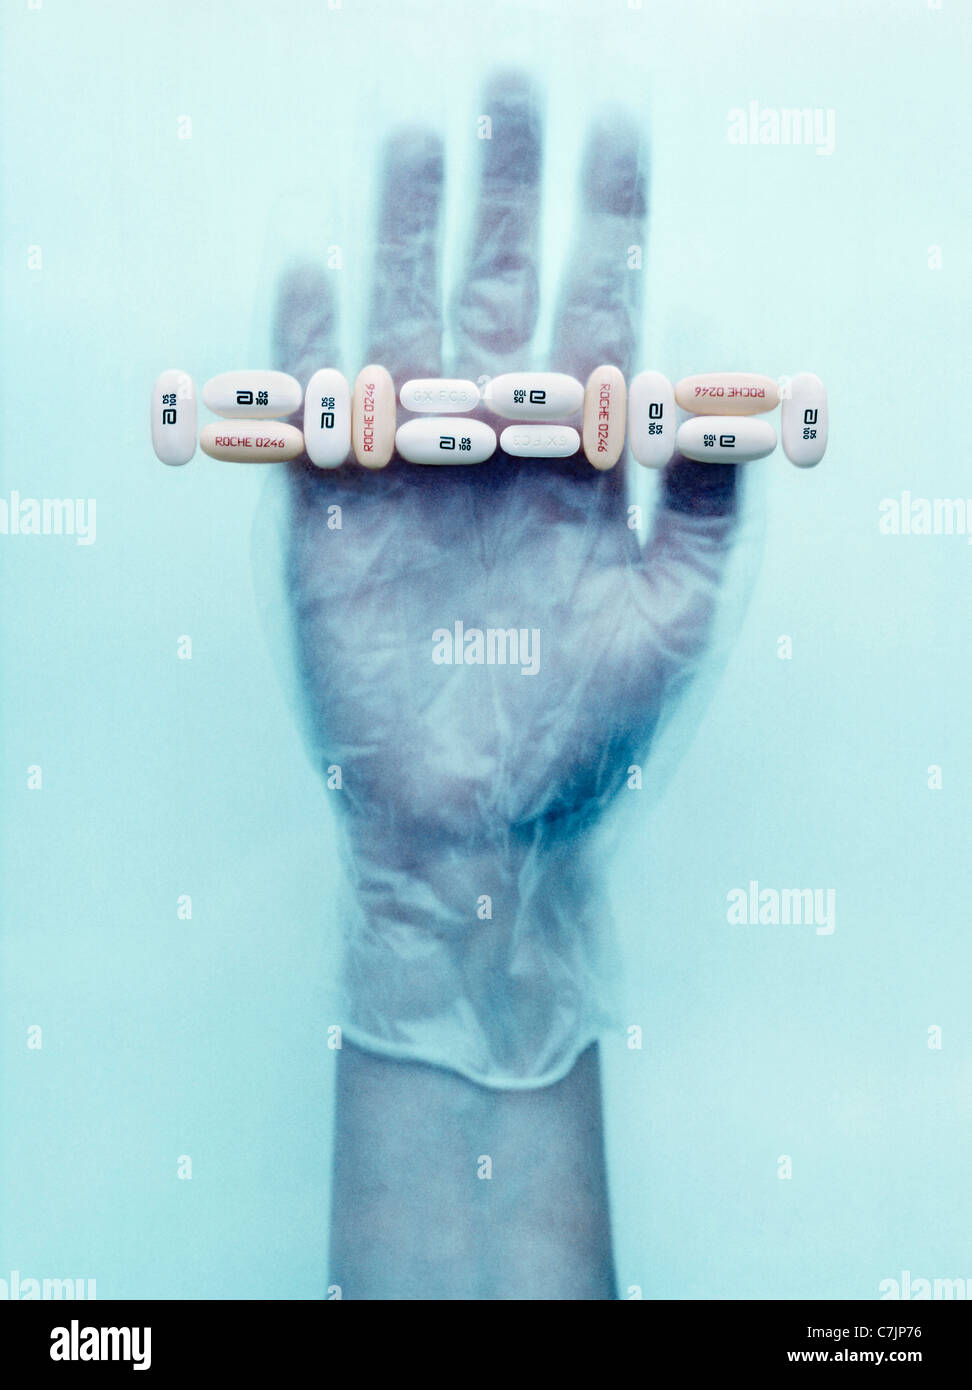 Gloved hand holding pills - Stock Image